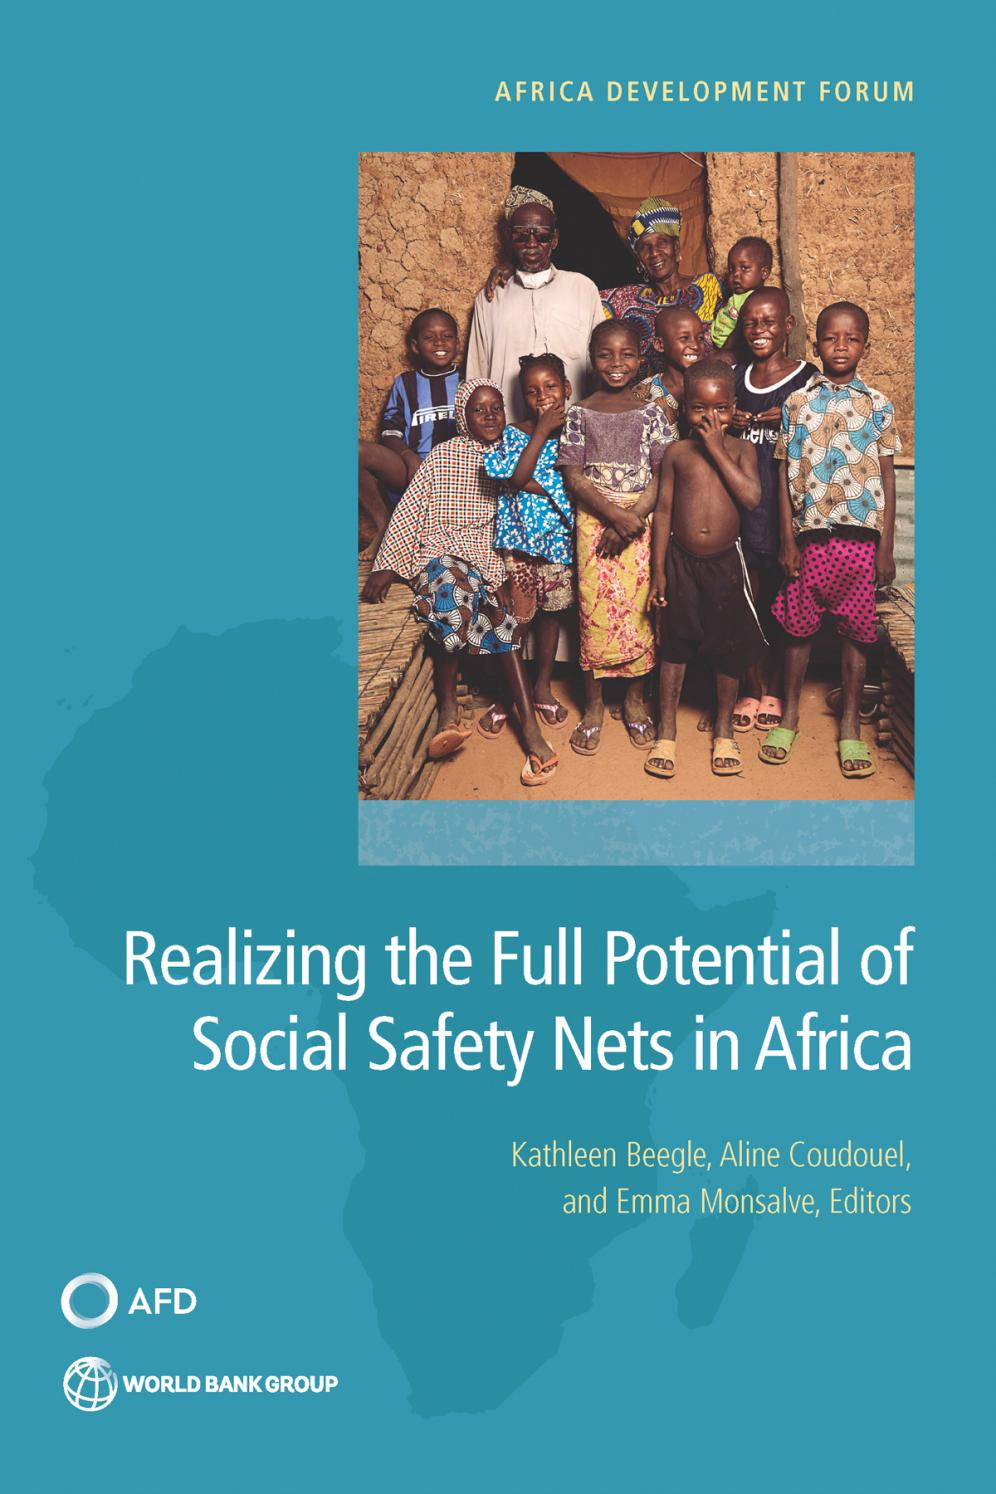 Realizing the Full Potential of Social Safety Nets in Africa by